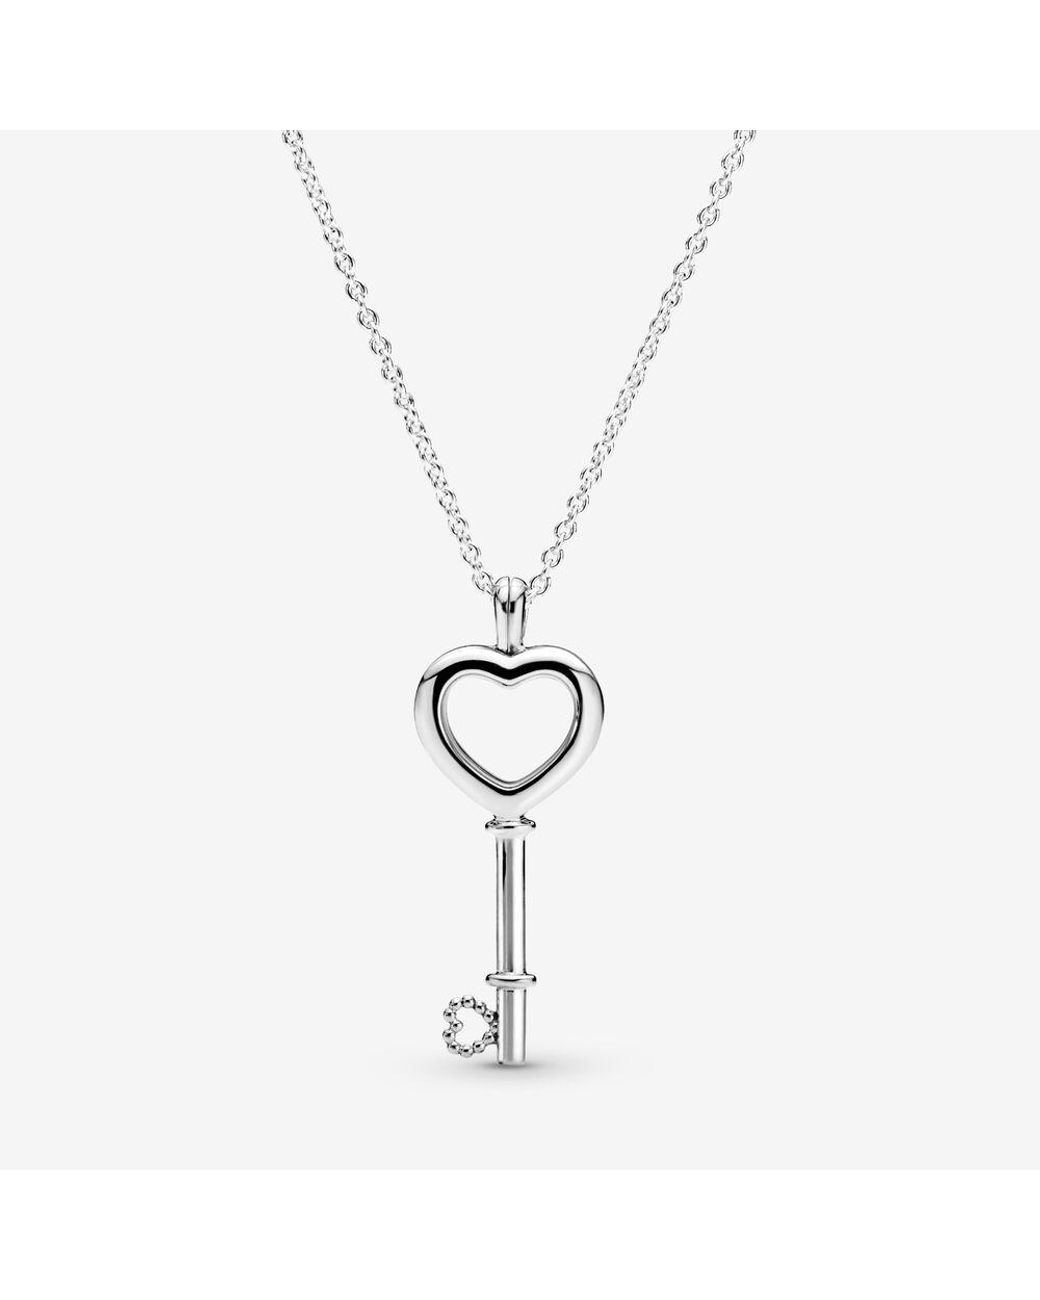 Pandora Lockets Heart Key Necklace In Metallic – Lyst Throughout Recent Pandora Lockets Heart Key Necklaces (Gallery 22 of 25)